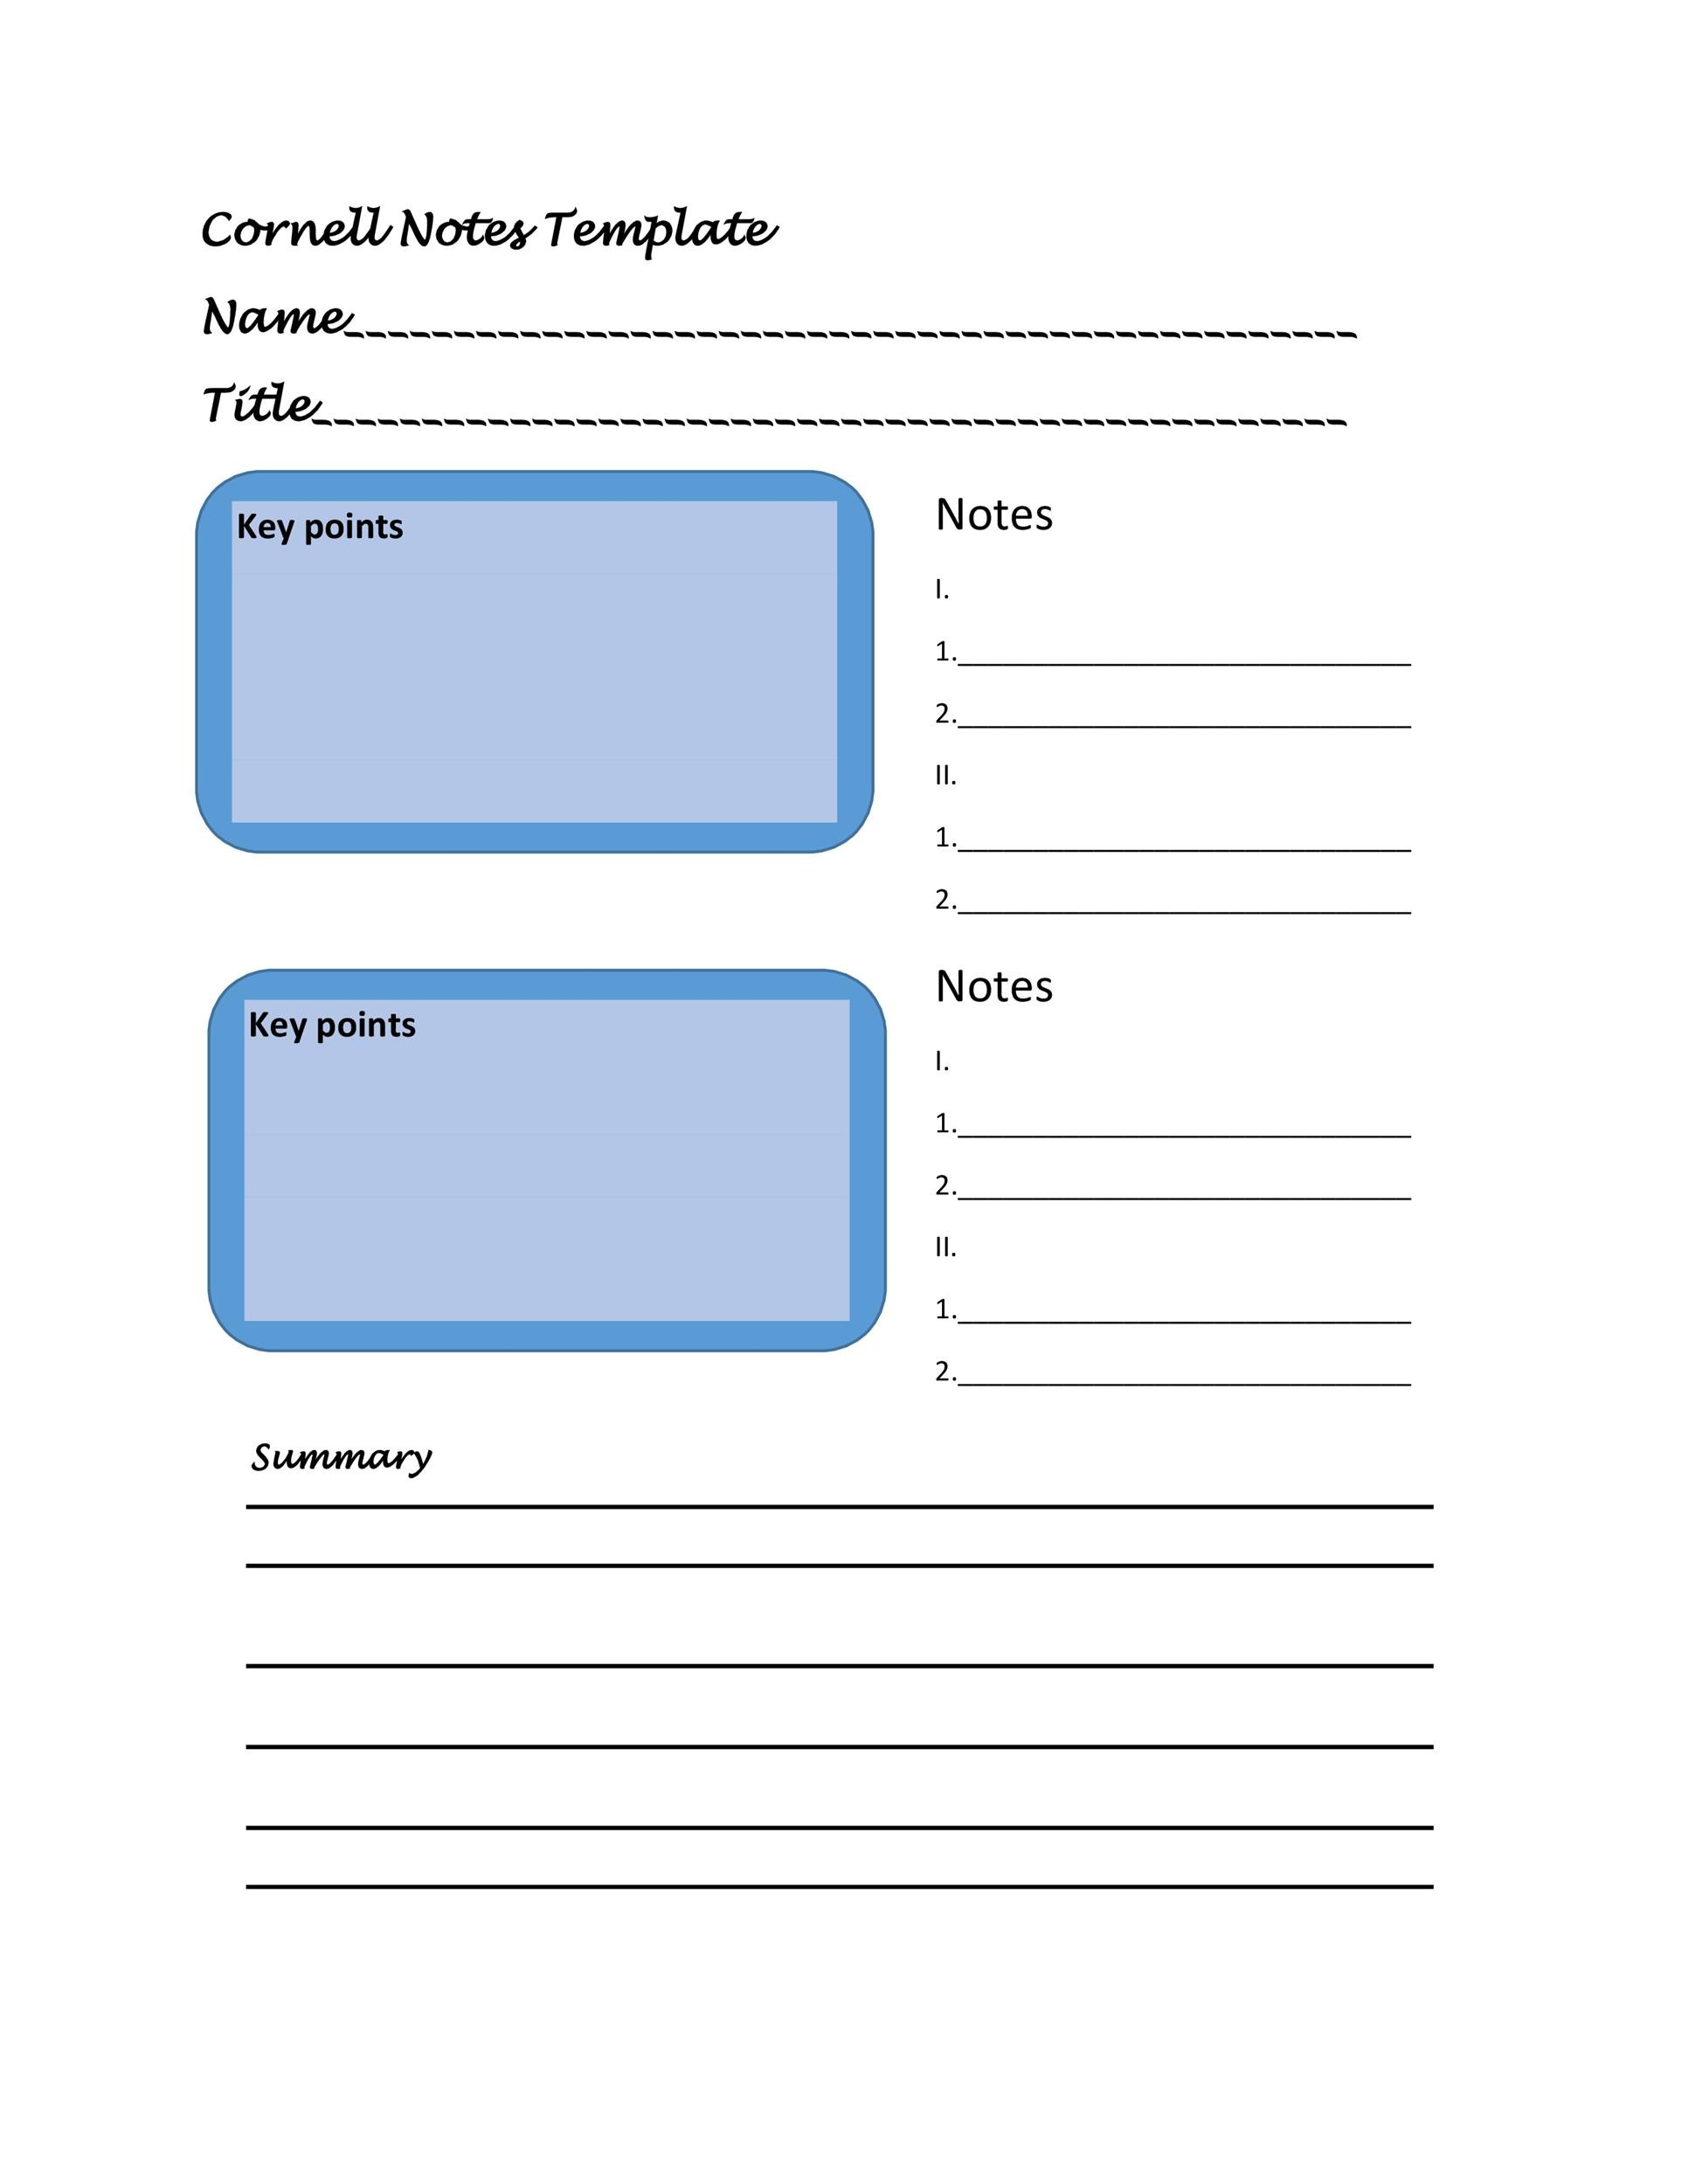 36 Cornell Notes Templates  Examples Word, PDF - Template Lab - cornell note template